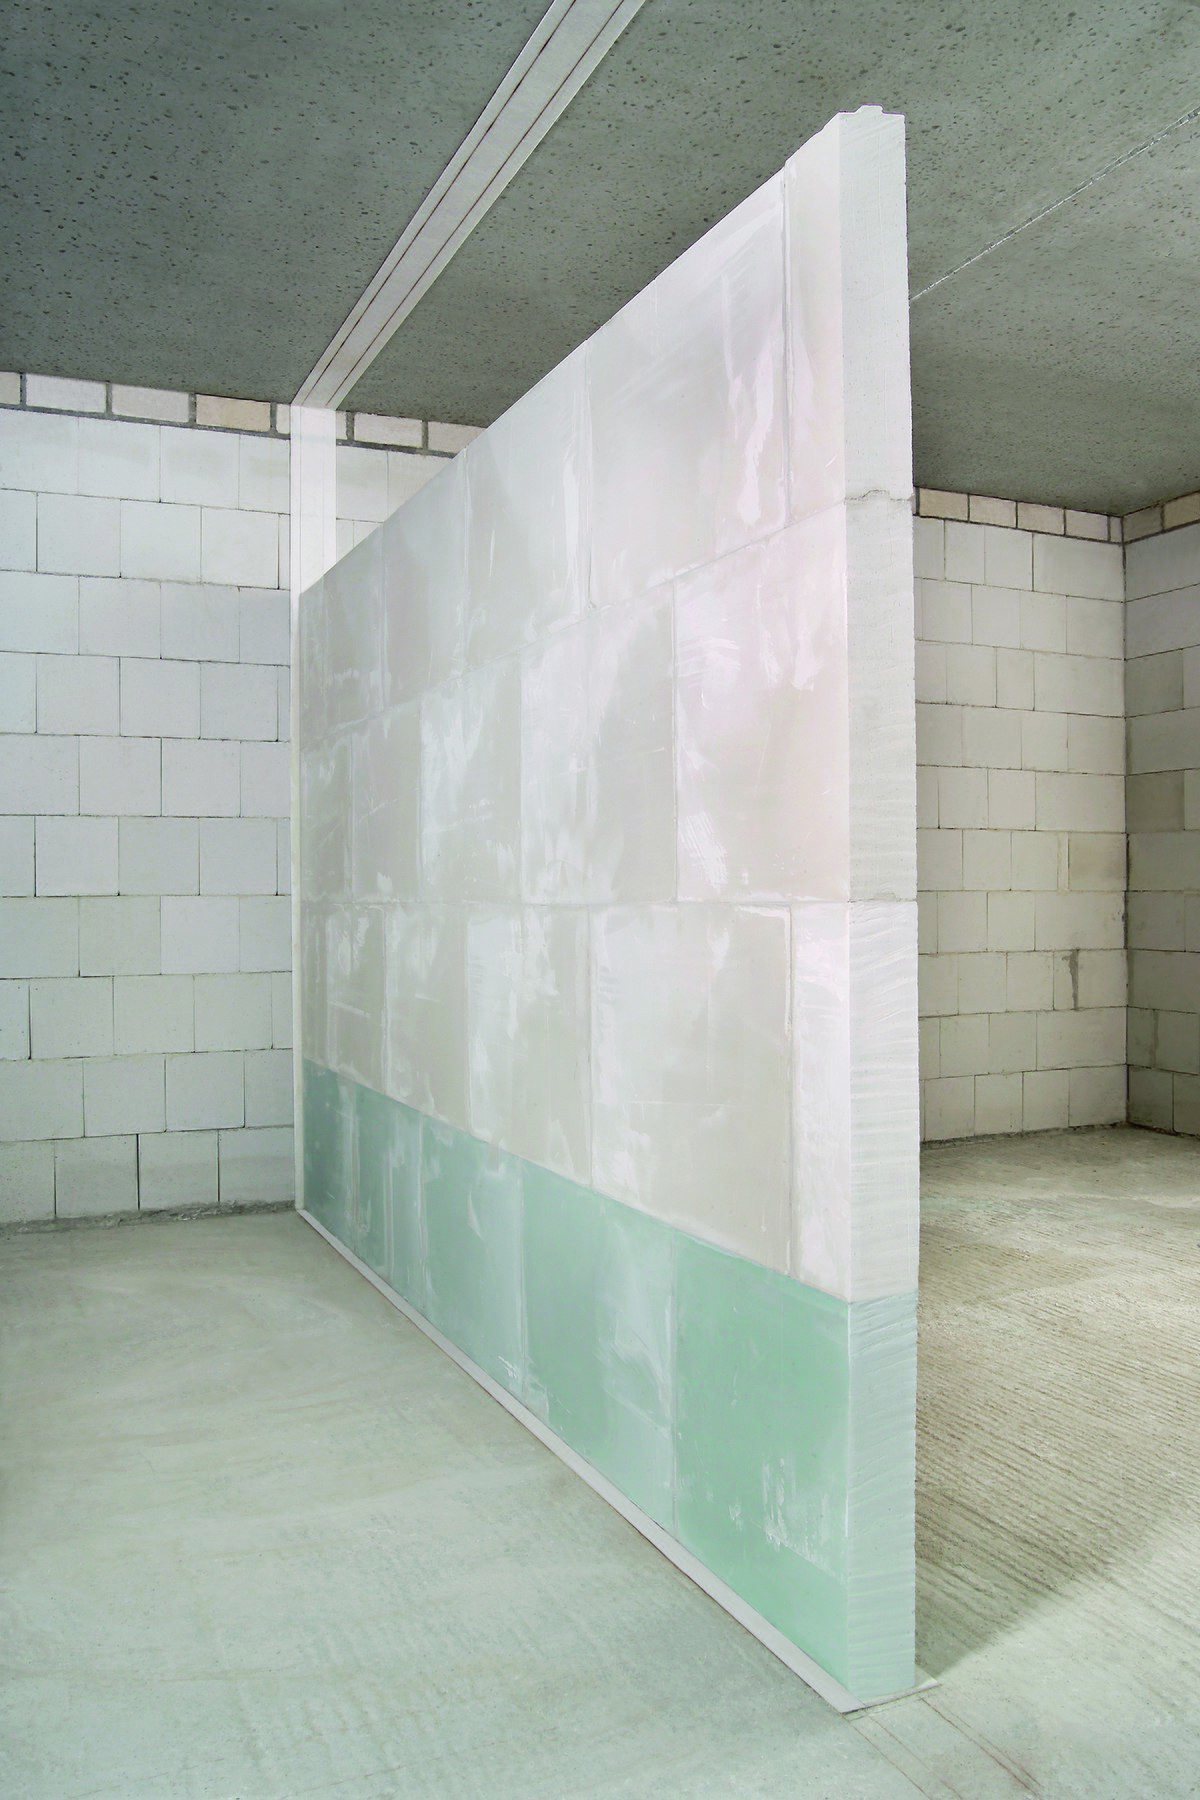 Drywall Gypsum Walls : Gypsum block wikipedia